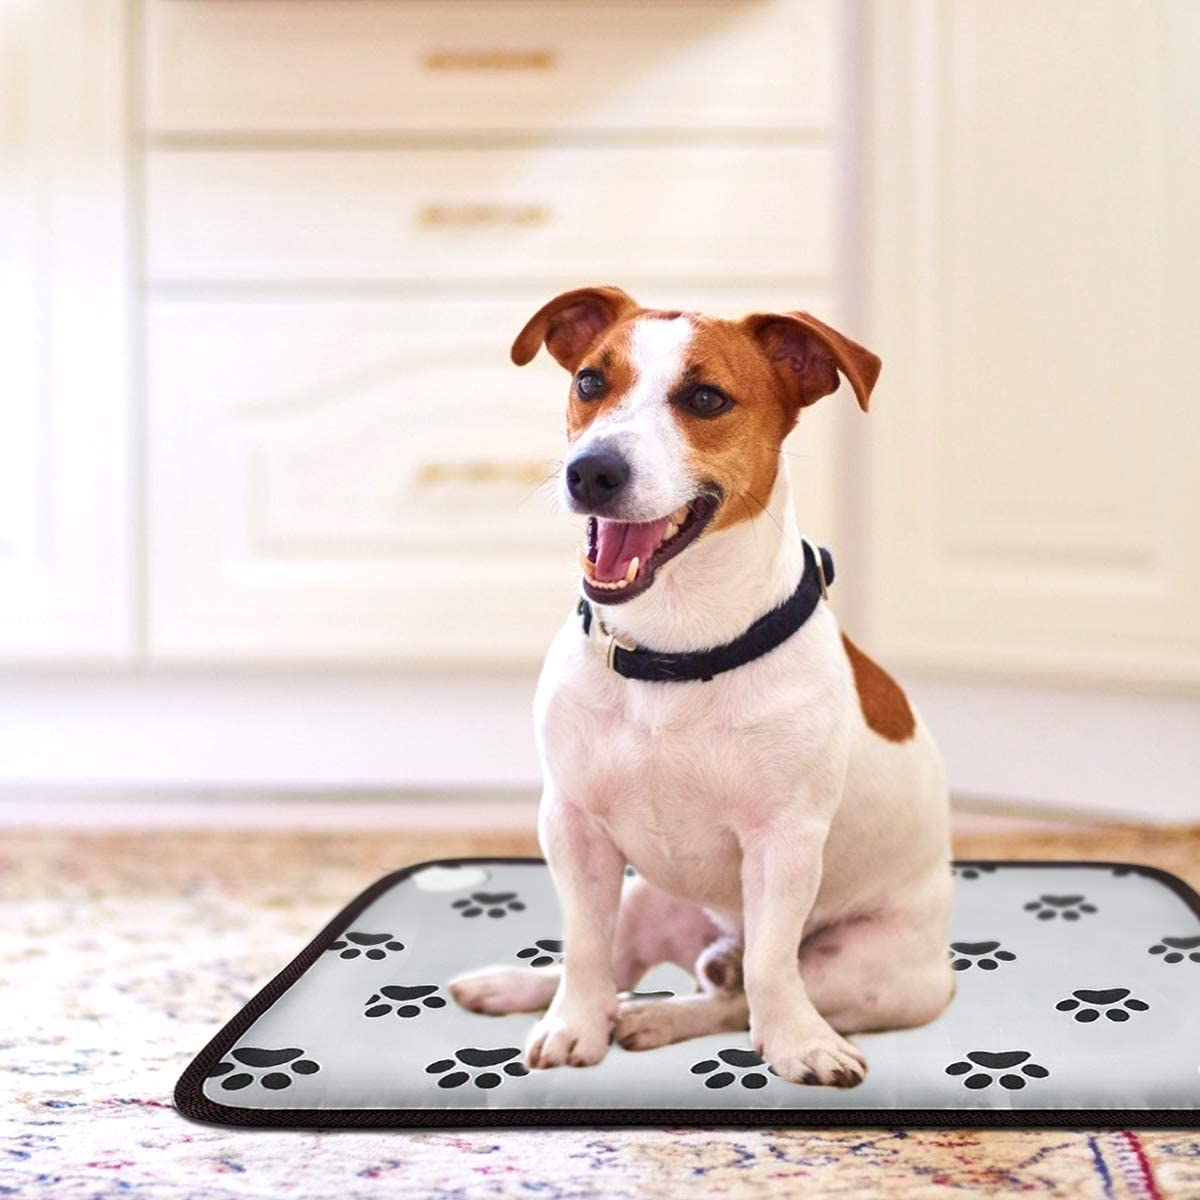 aileepet heating pad for dog with arthritis